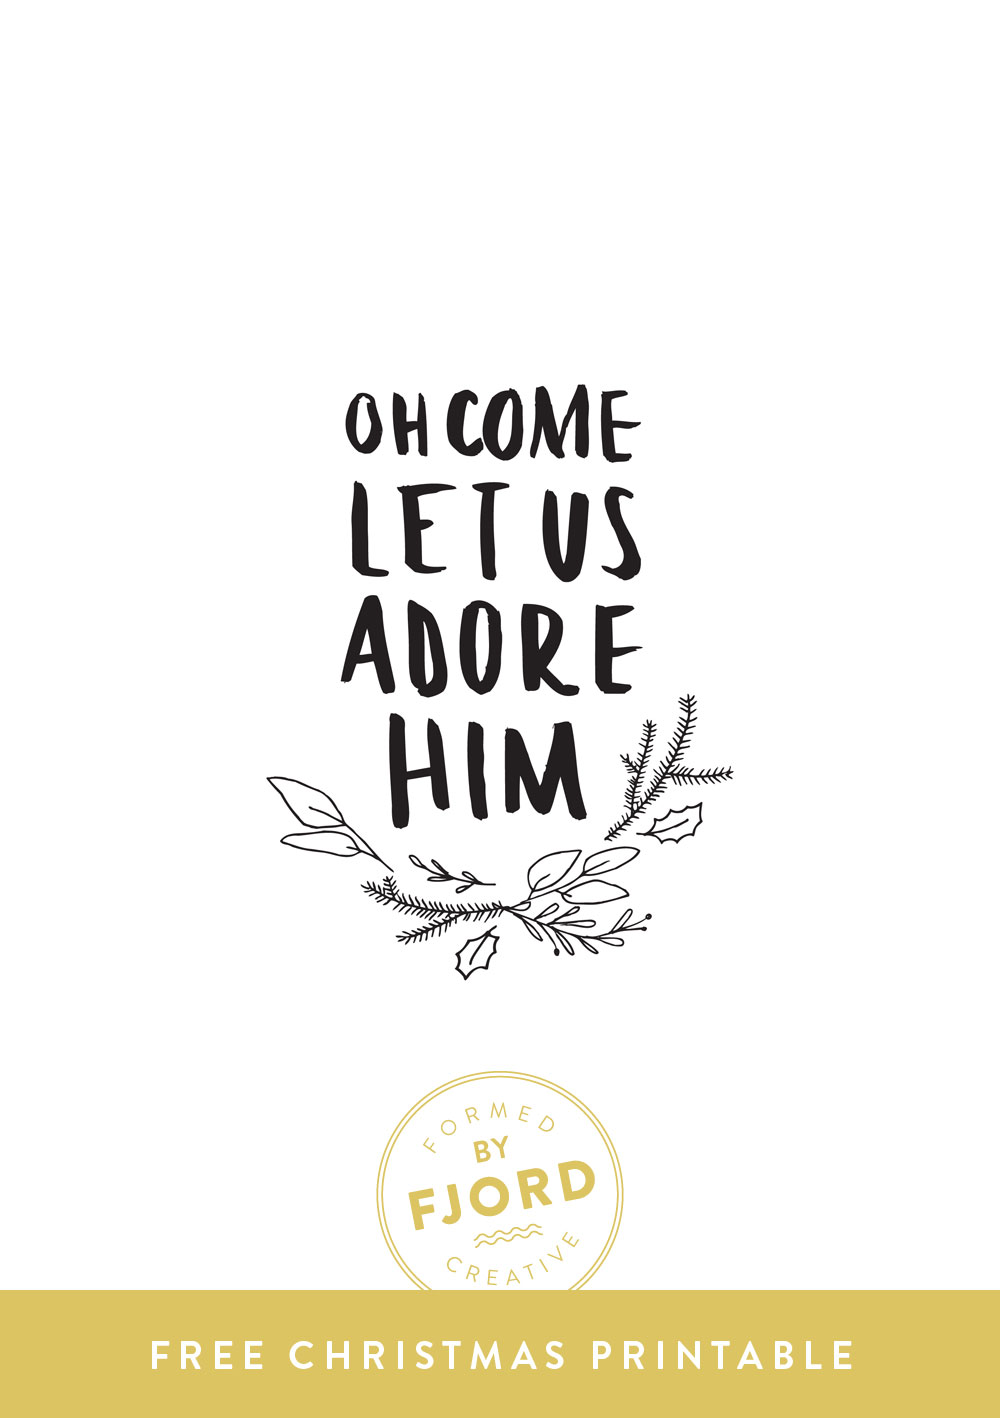 Free Christmas Printable by Fjord Creative // Oh Come Let Us Adore Him